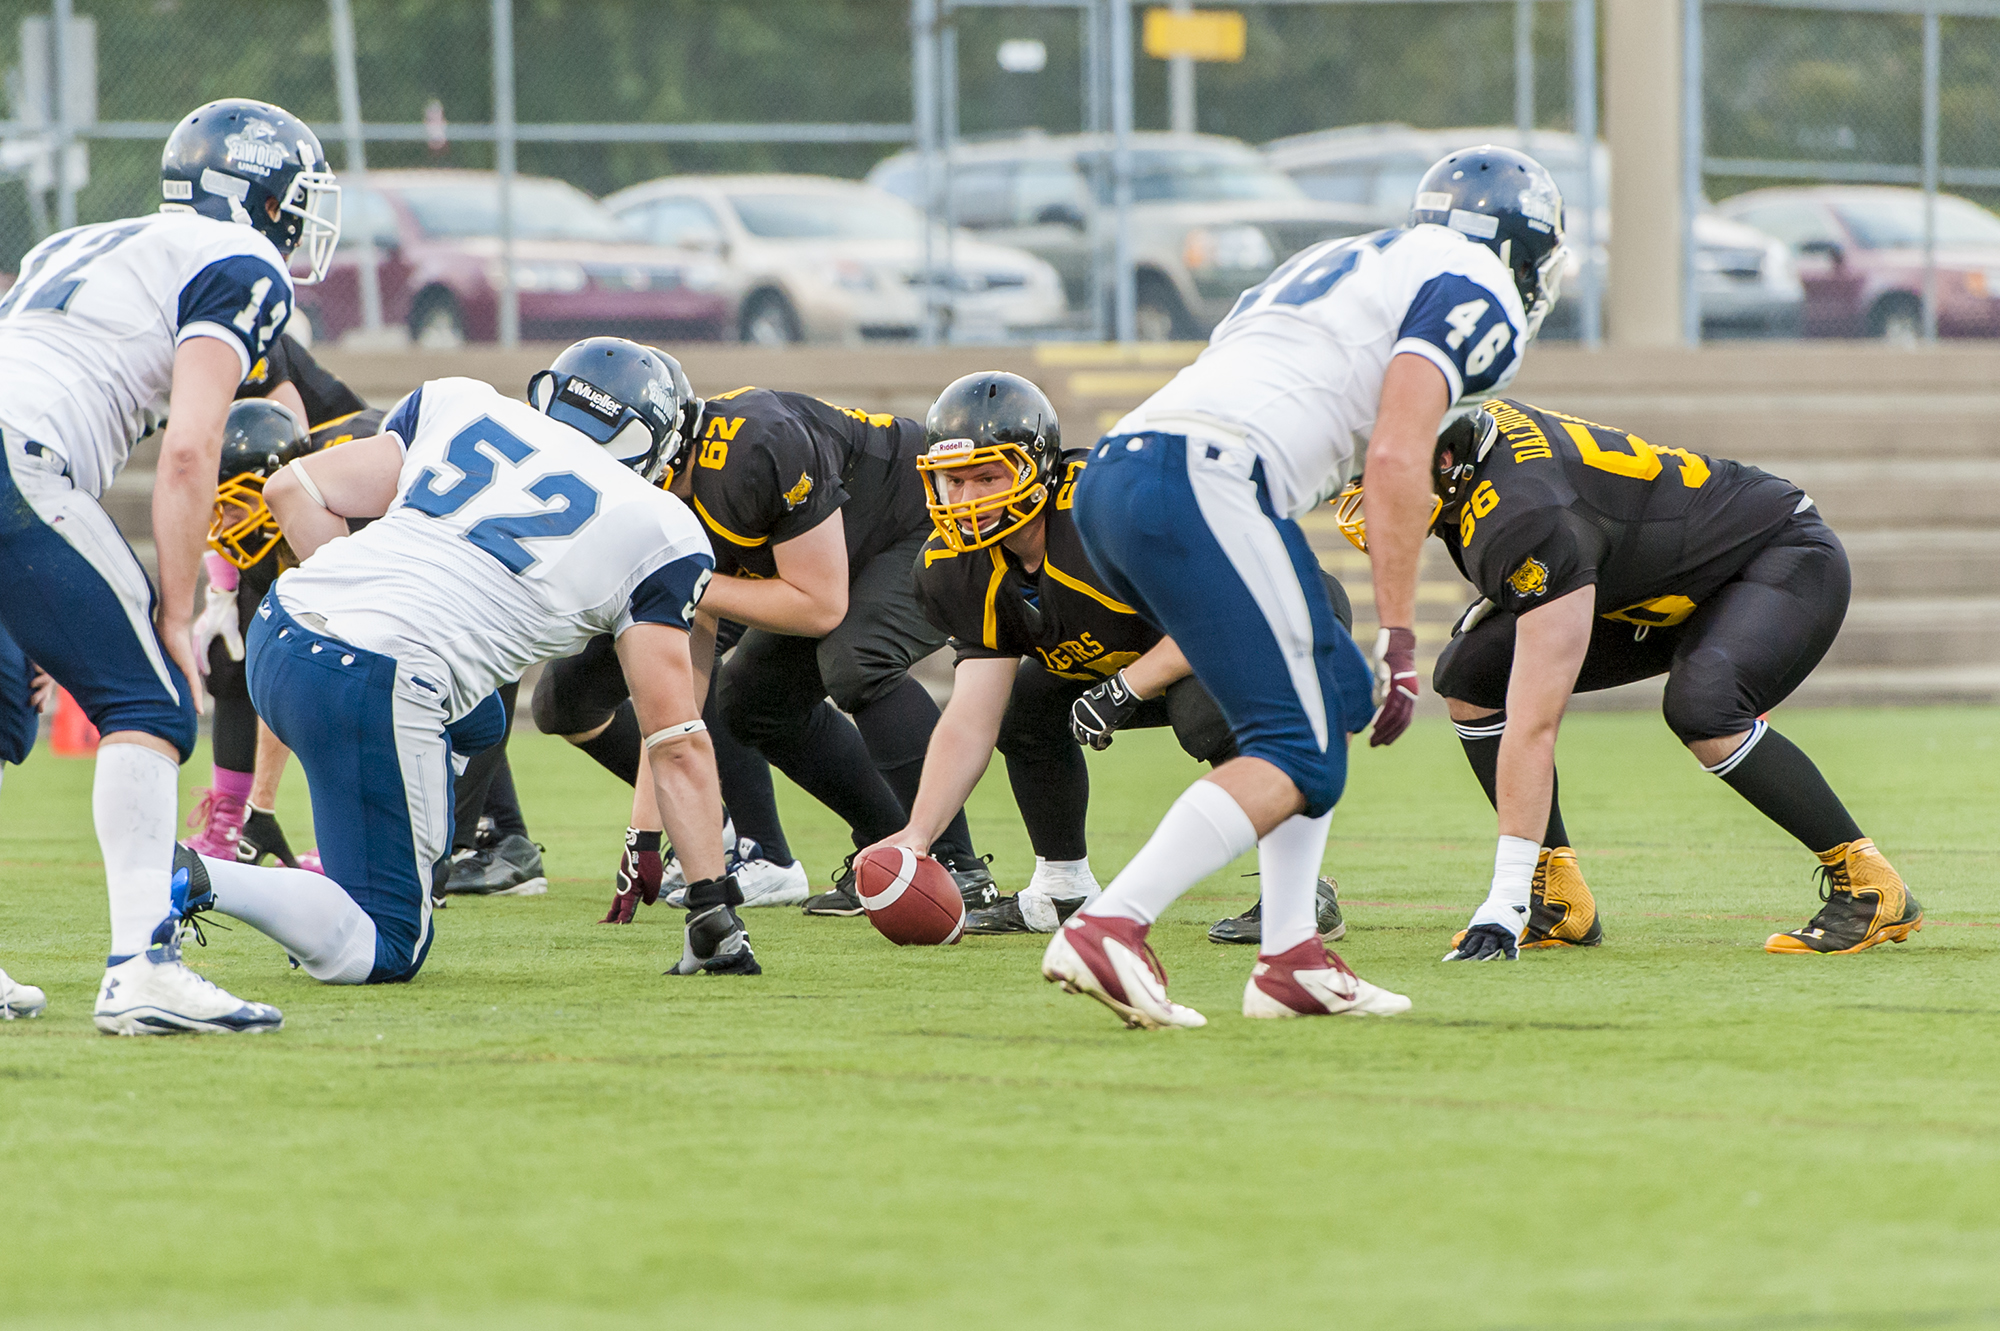 Dal's O-line gets ready the snap the ball (photo by Chris Parent)